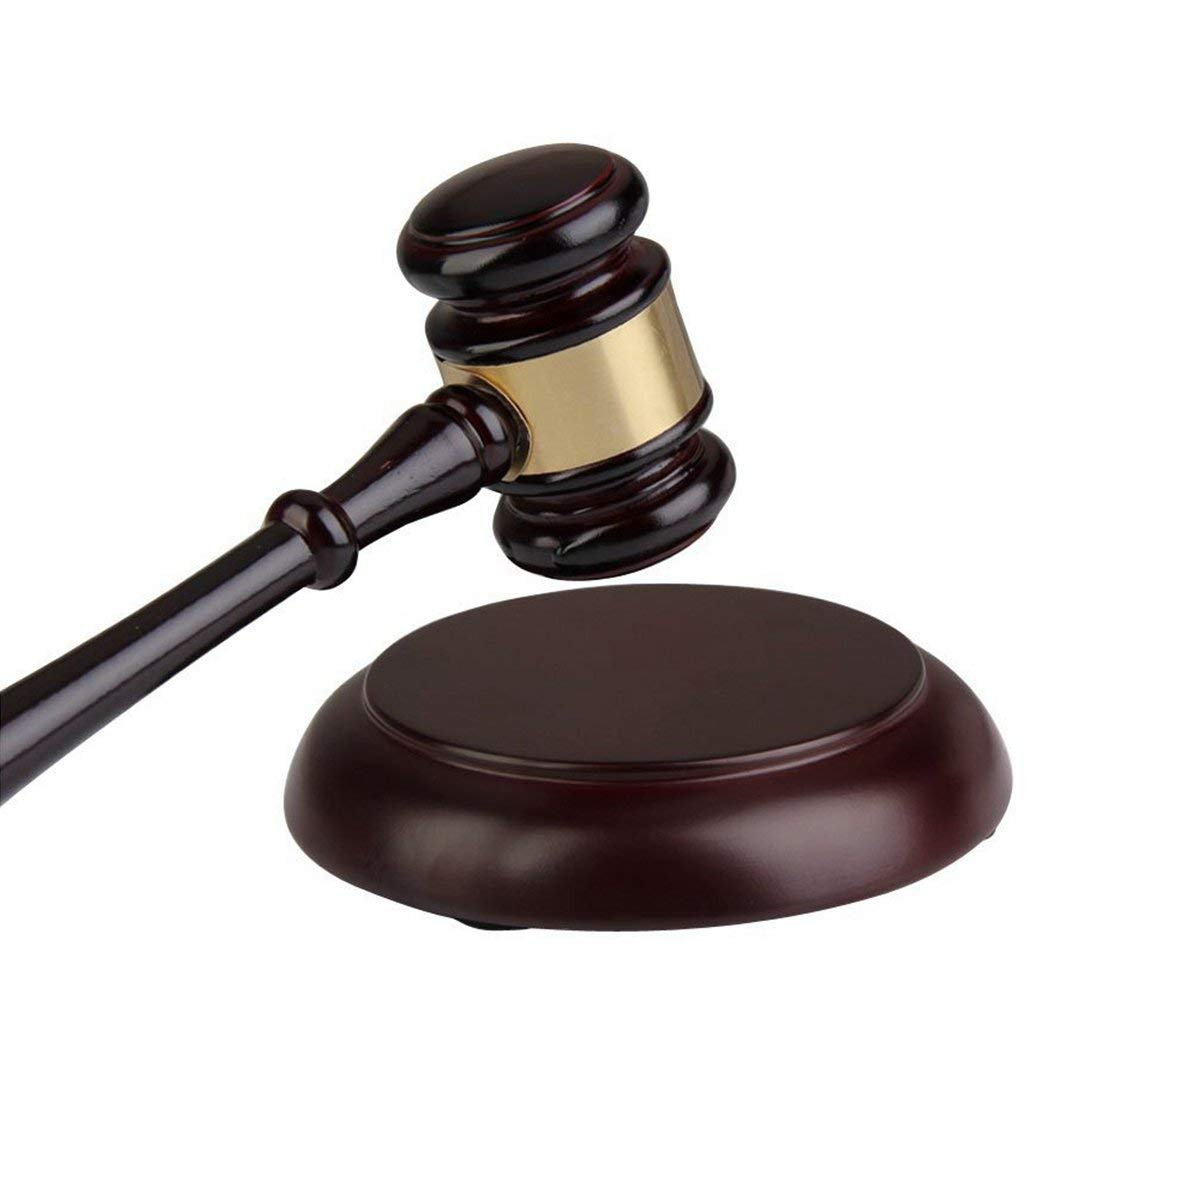 Wood Gavel and Round Block Set for Lawyer, Student, Judge, Auction Sale, Teaching Meetings, Unique Craft Gifts Toys by Tescogo